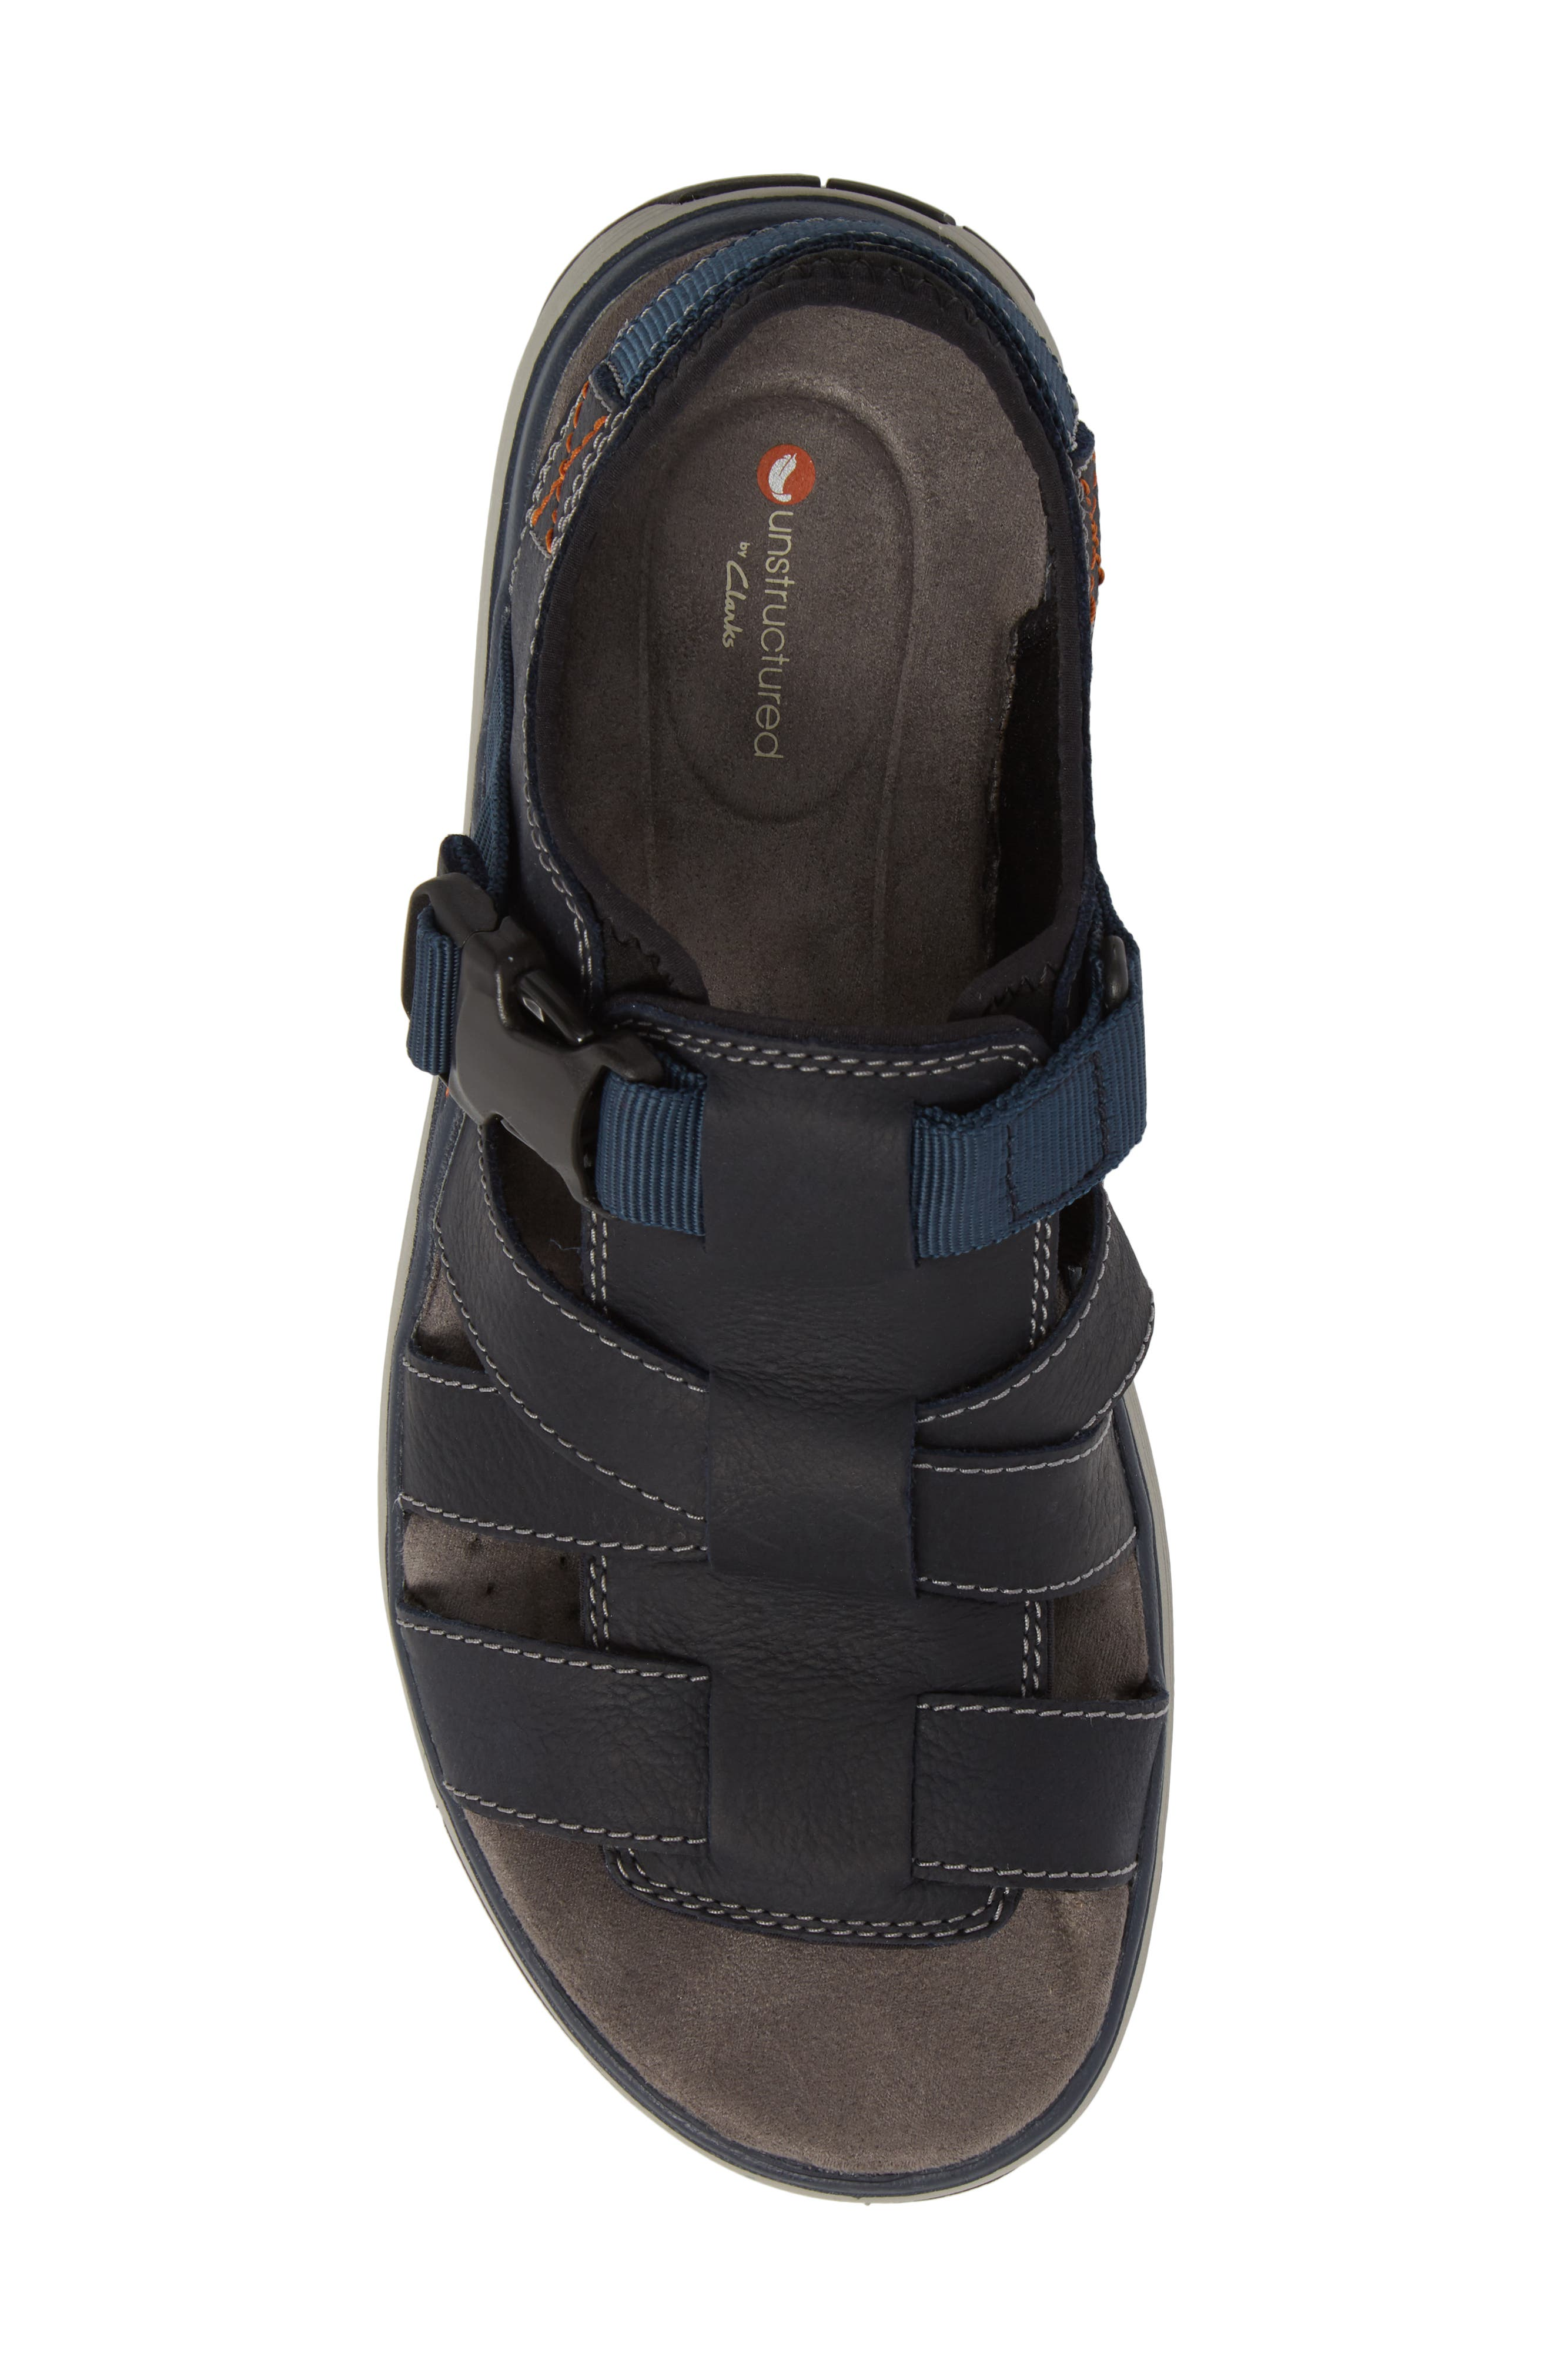 Clarks<sup>®</sup> Untrek Cove Fisherman Sandal,                             Alternate thumbnail 10, color,